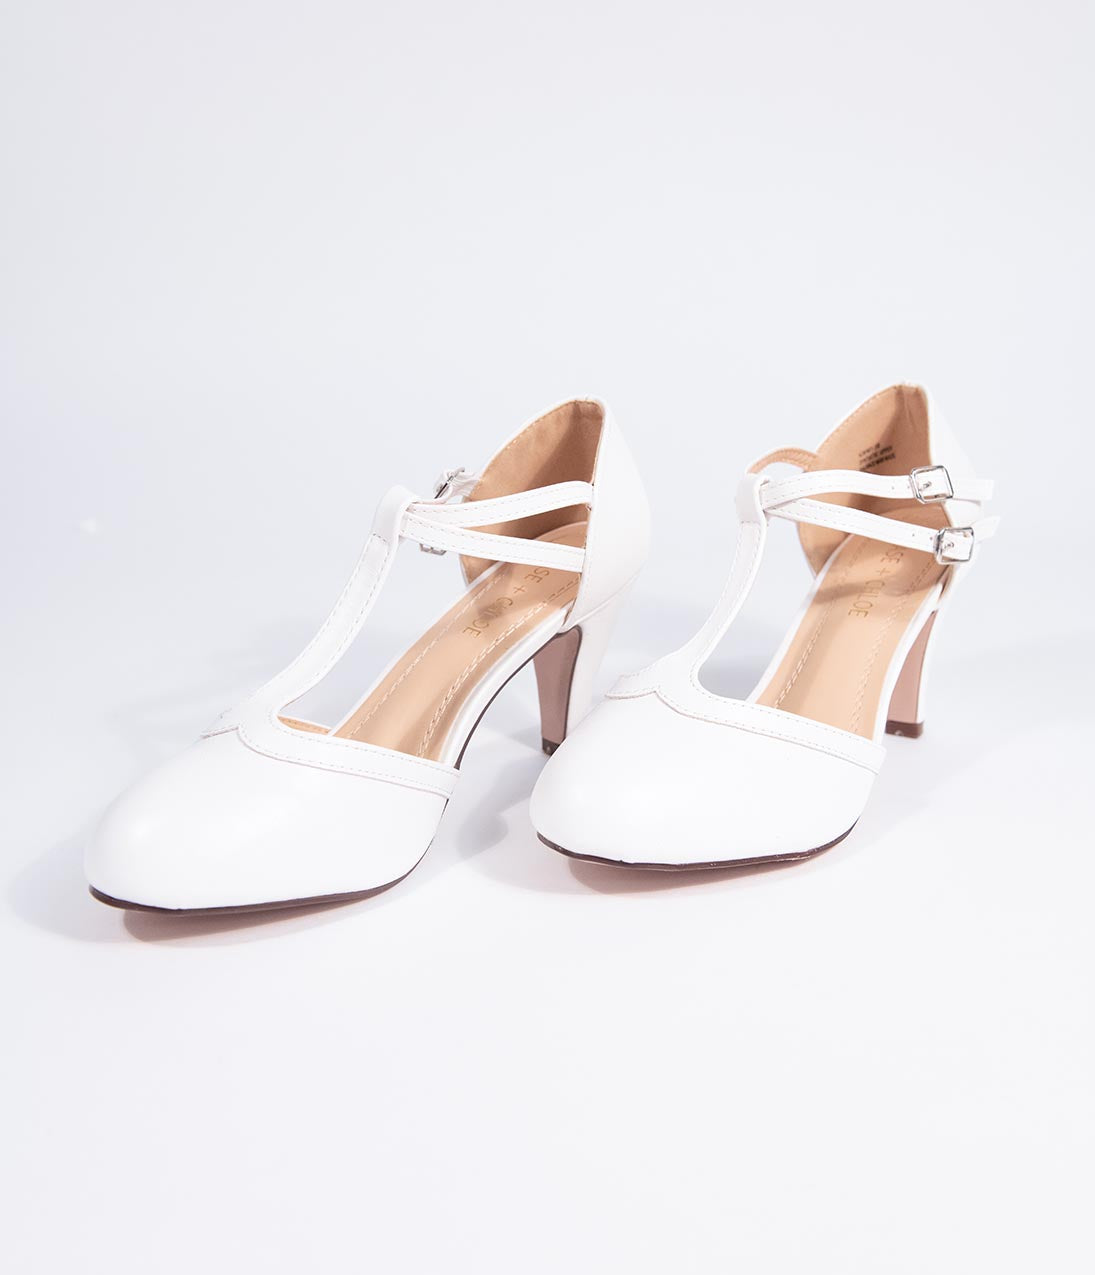 9c5187577bb9 History of Roaring 20s Shoes Vintage Style White Leatherette Round Toe  T-Strap Heels  48.00